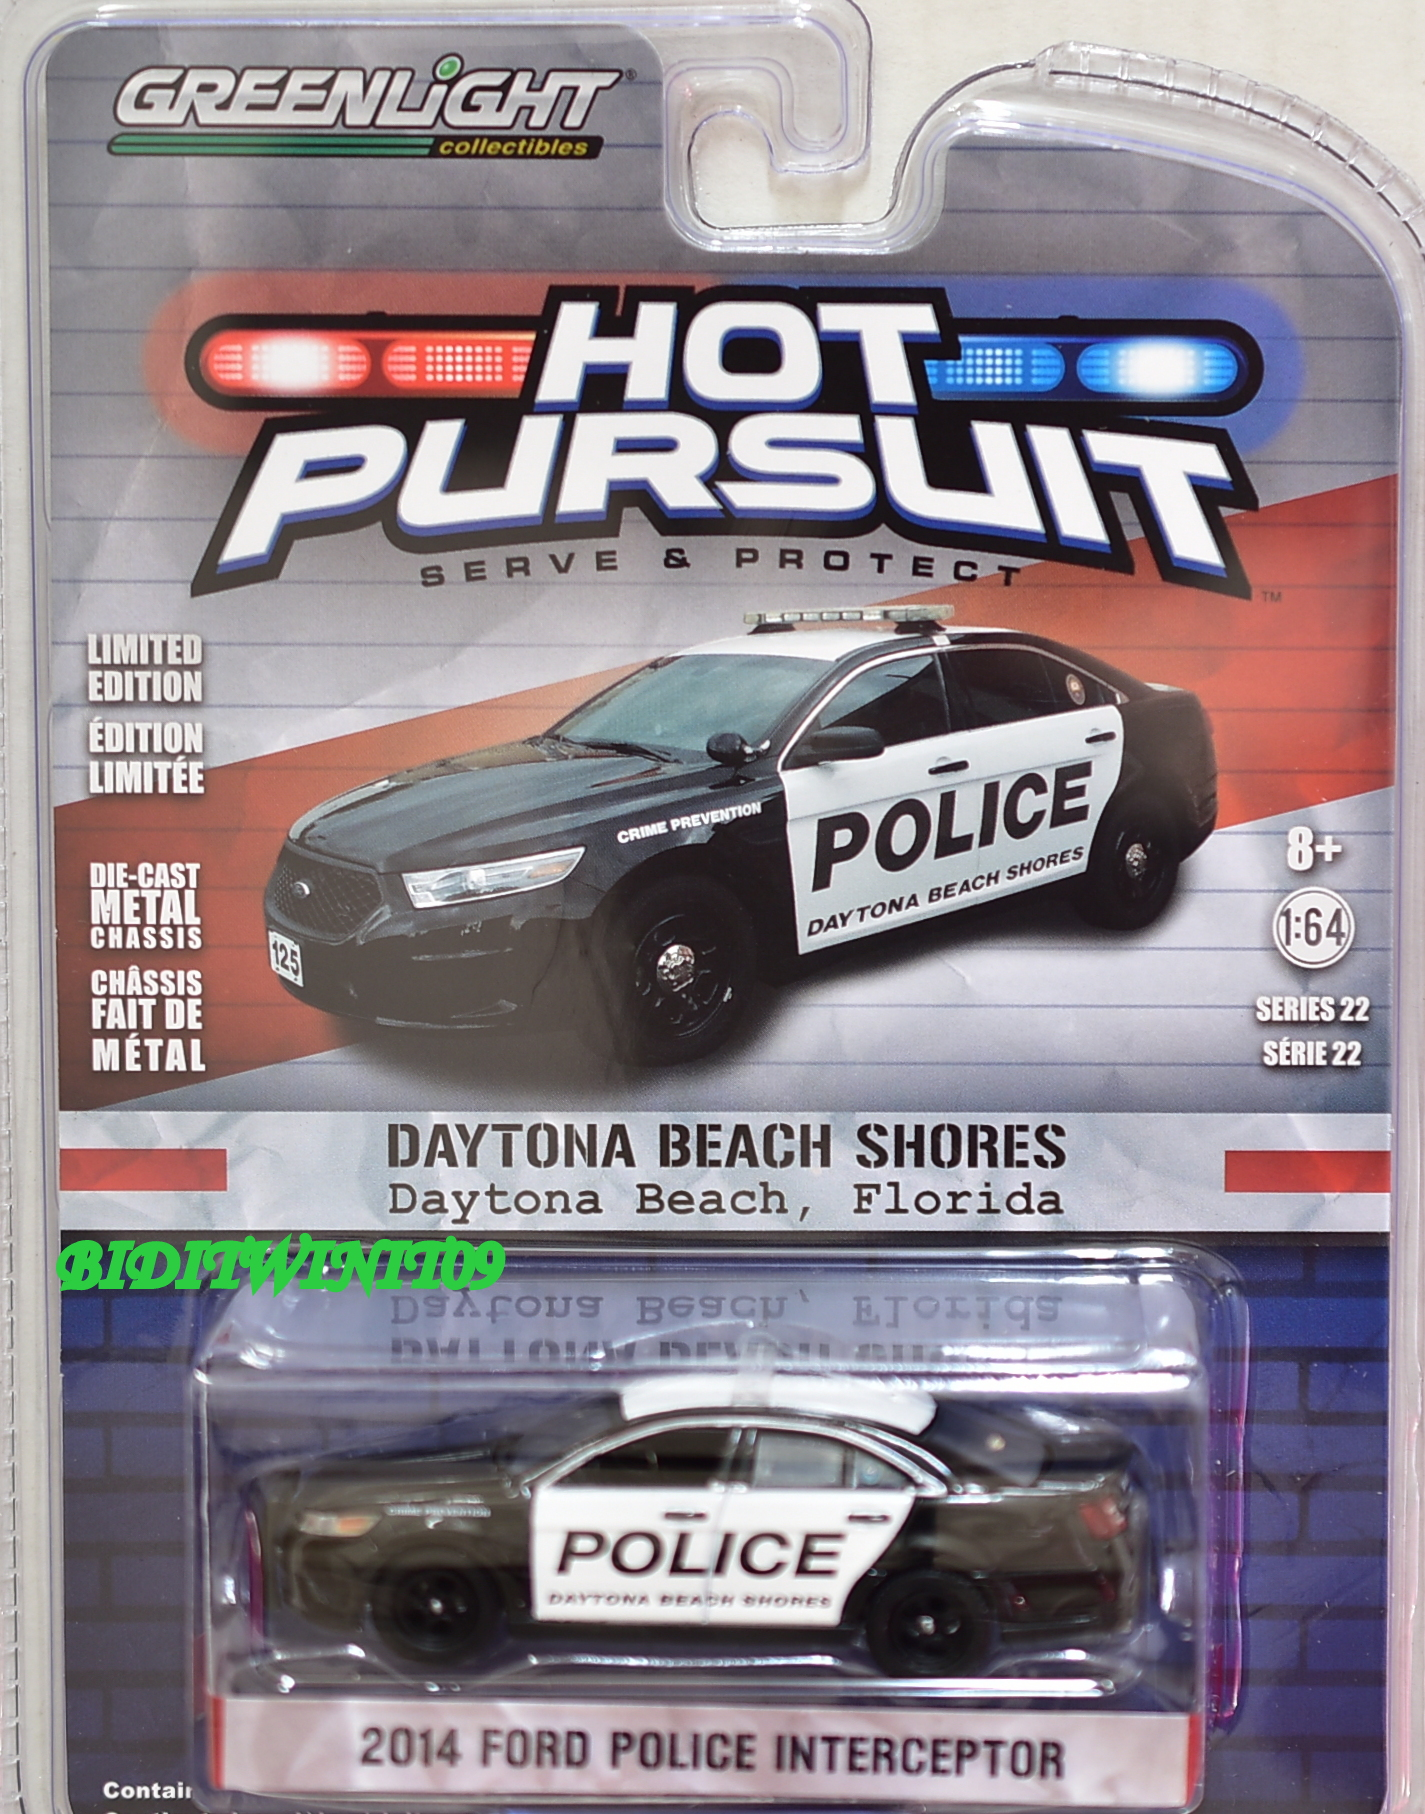 2017 GREENLIGHT 2014 FORD POLICE INTERCEPTOR HOT PURSUIT SERIES 22